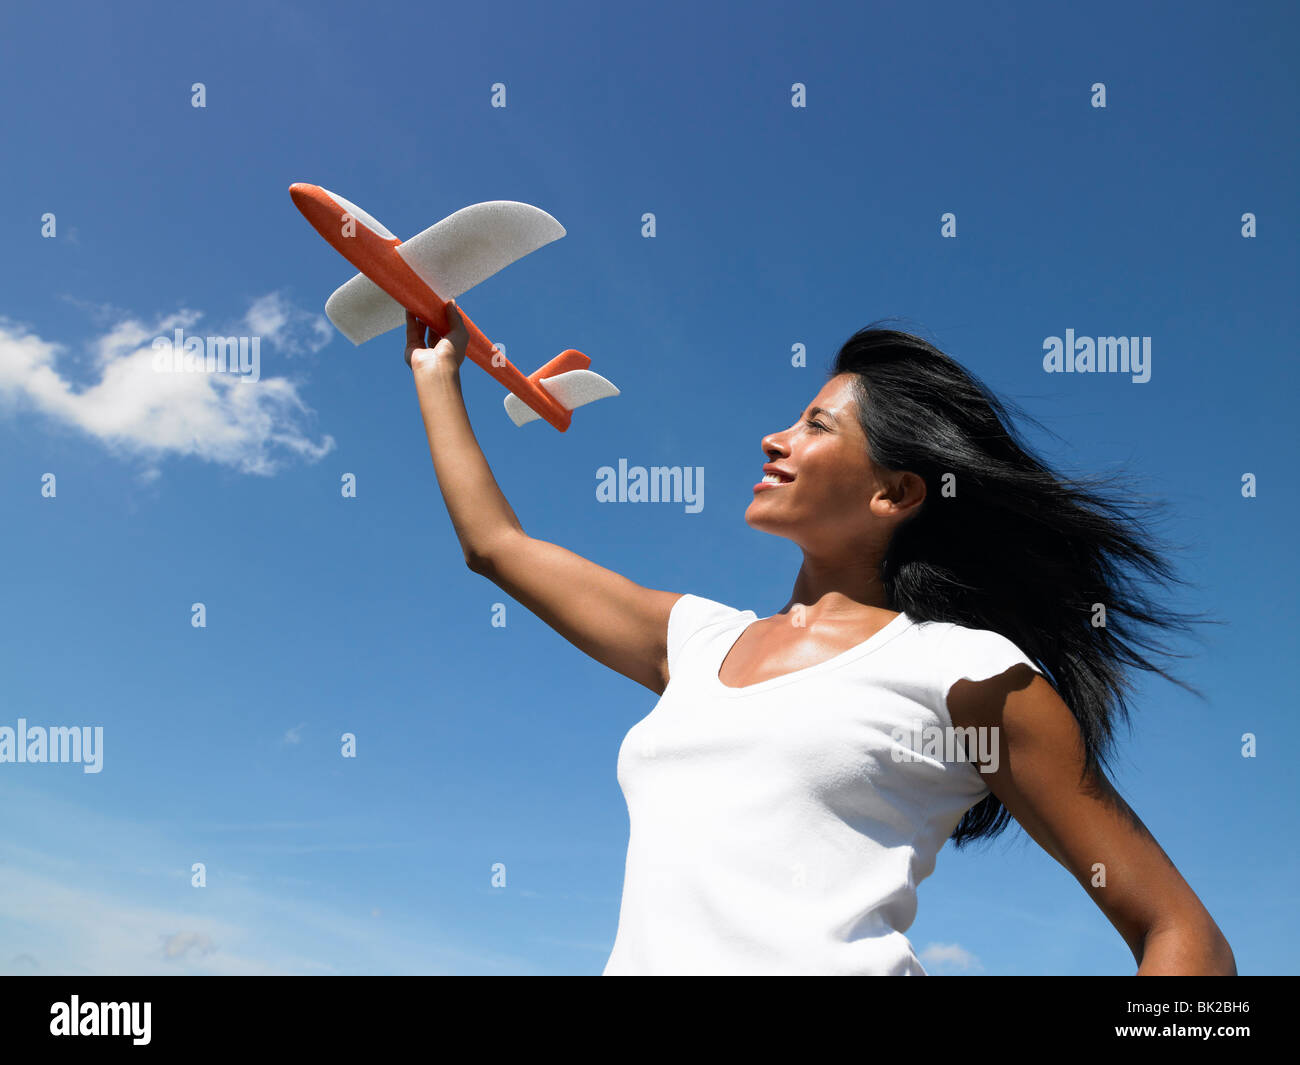 Woman holding a plane towards the sky - Stock Image